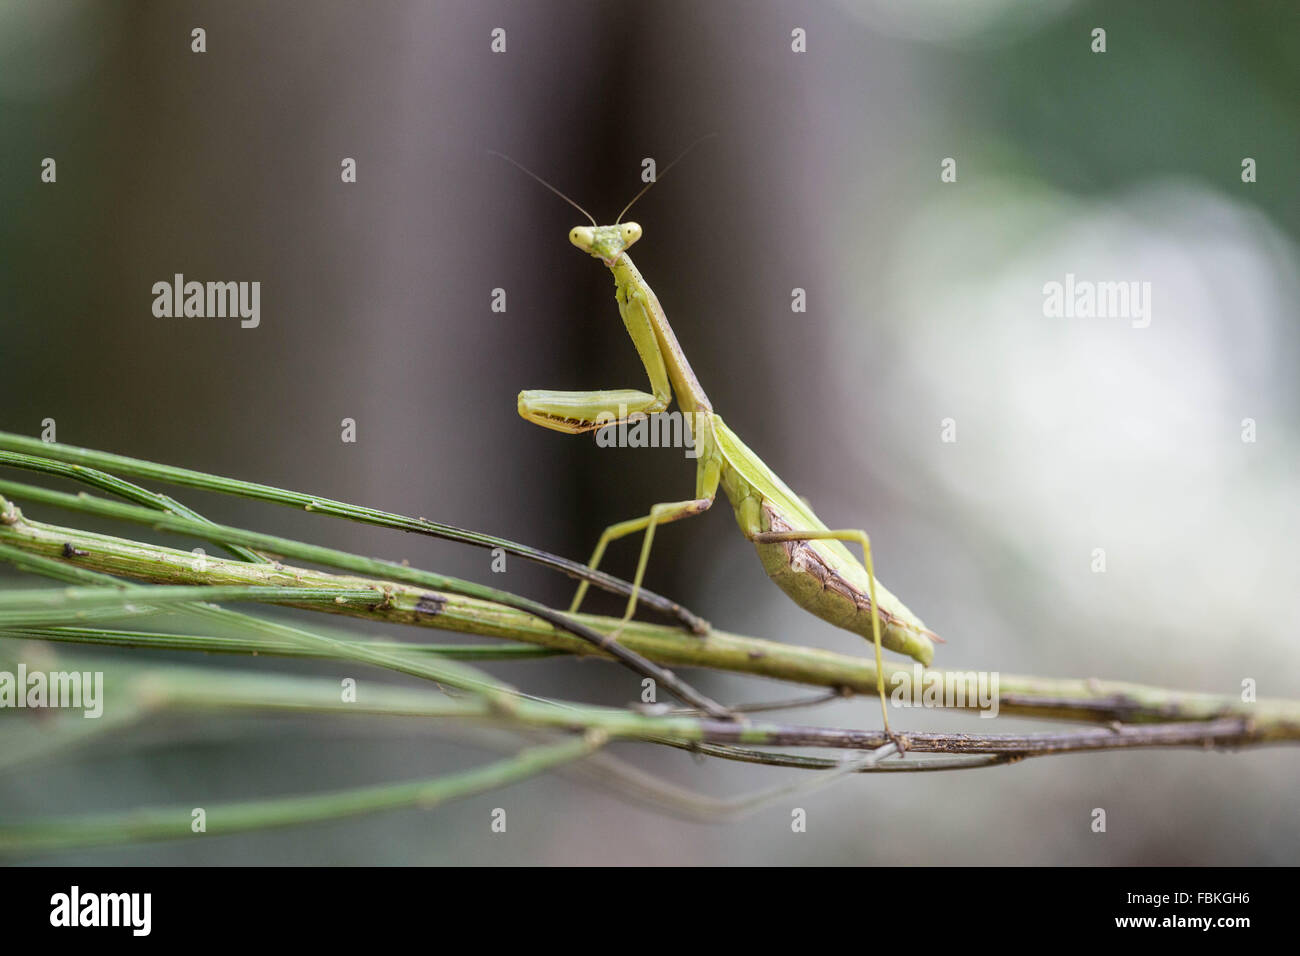 A Stare Down with a Praying Mantis - Stock Image